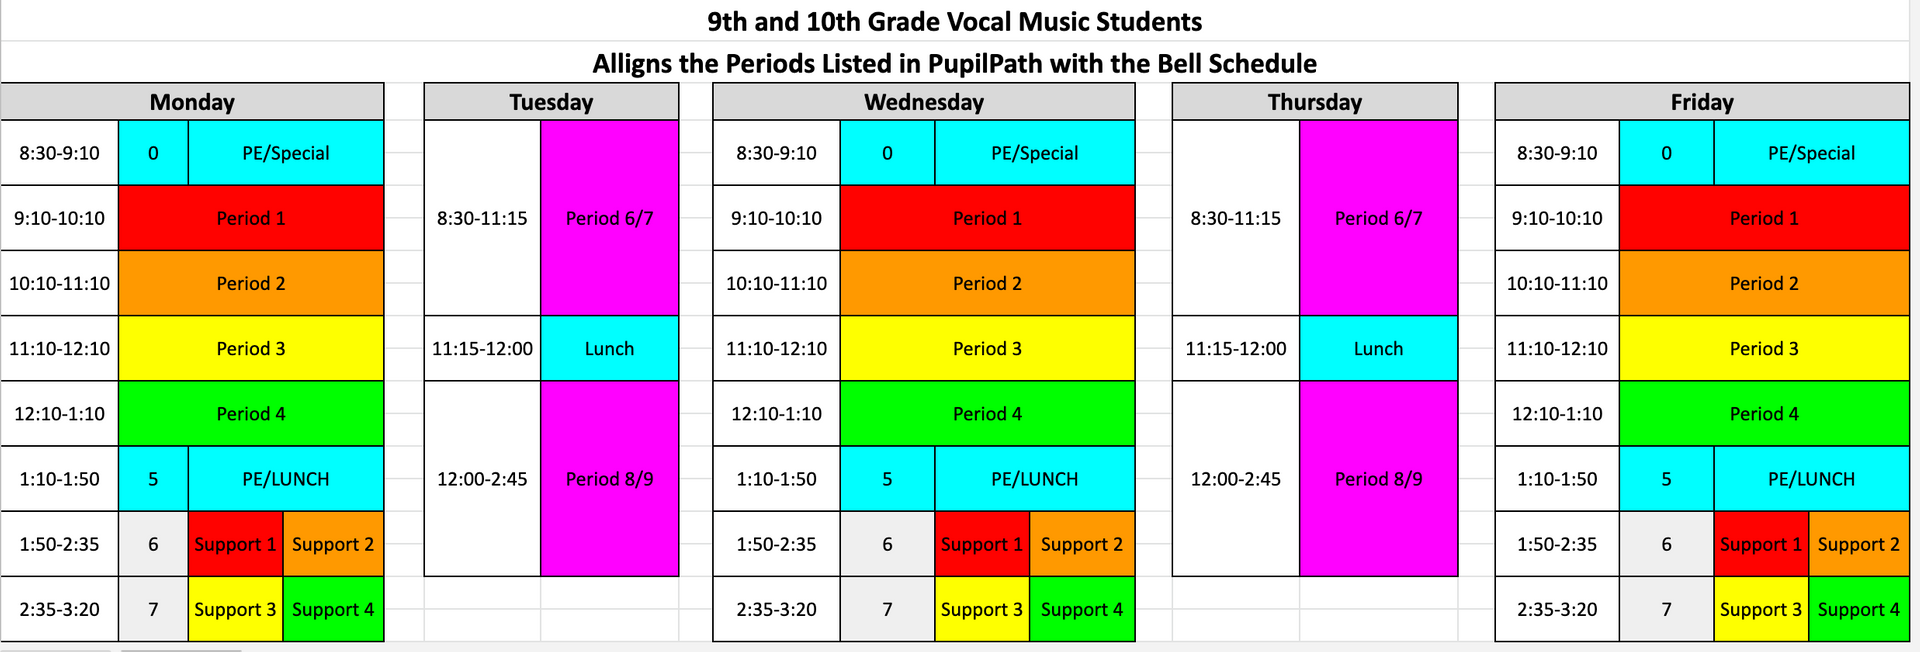 Vocal Bell Schedules Grades 9 and 10